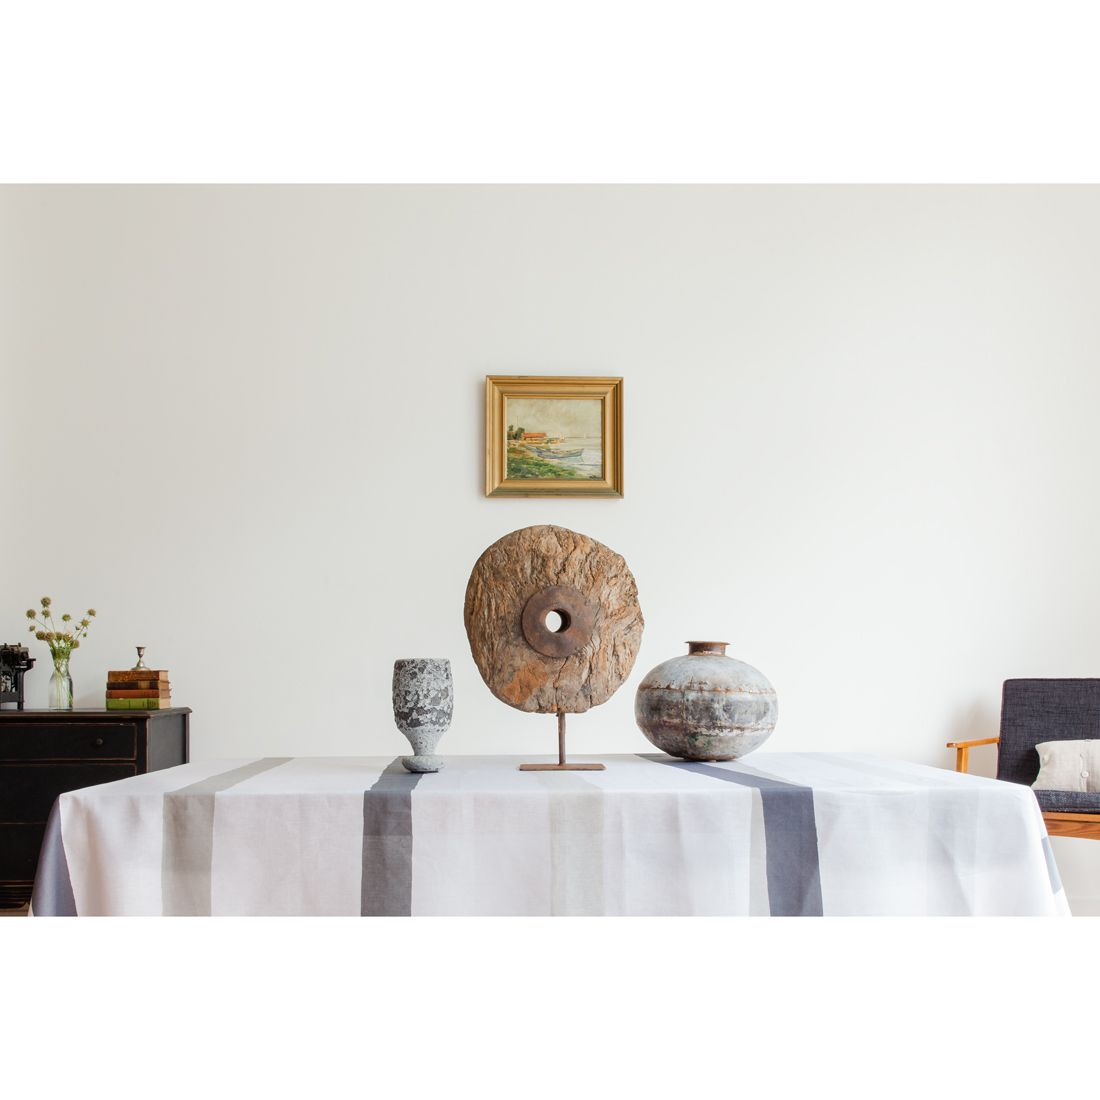 Huddleson Linens   White Grey Charcoal Ivory Cream Stripe Linen Tablecloth  Modern Contemporary